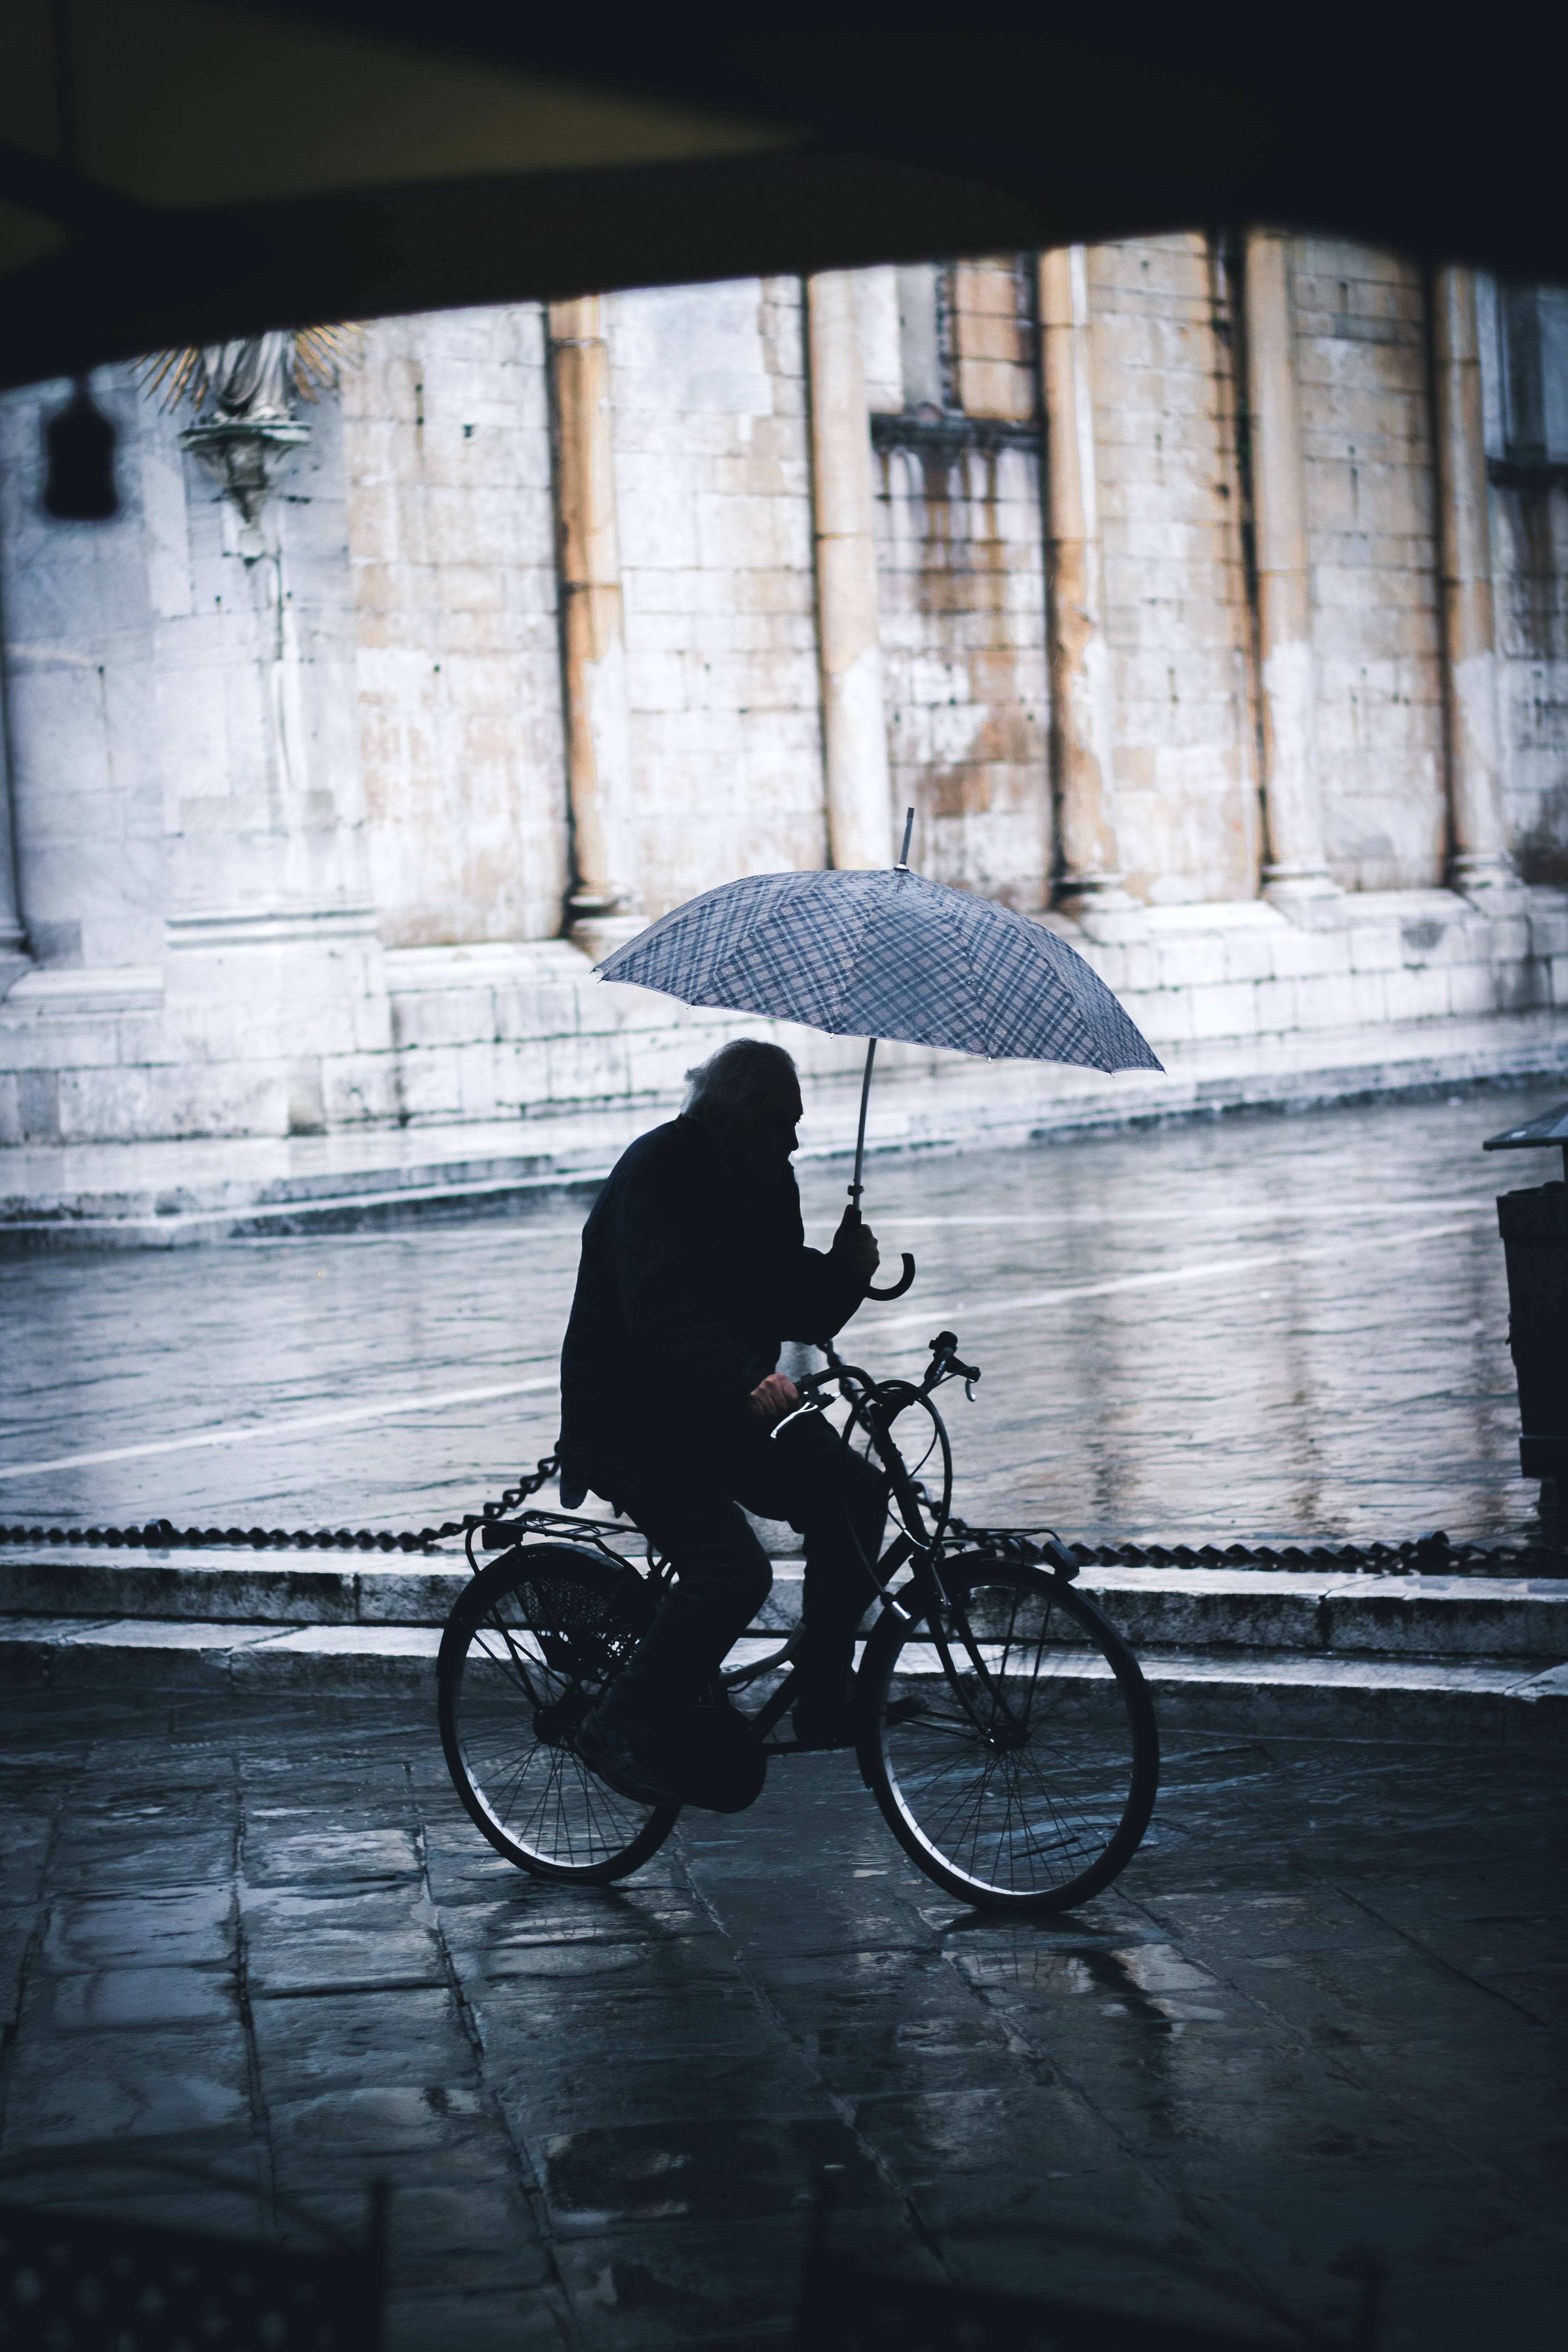 man riding bicycle while holding umbrella near street